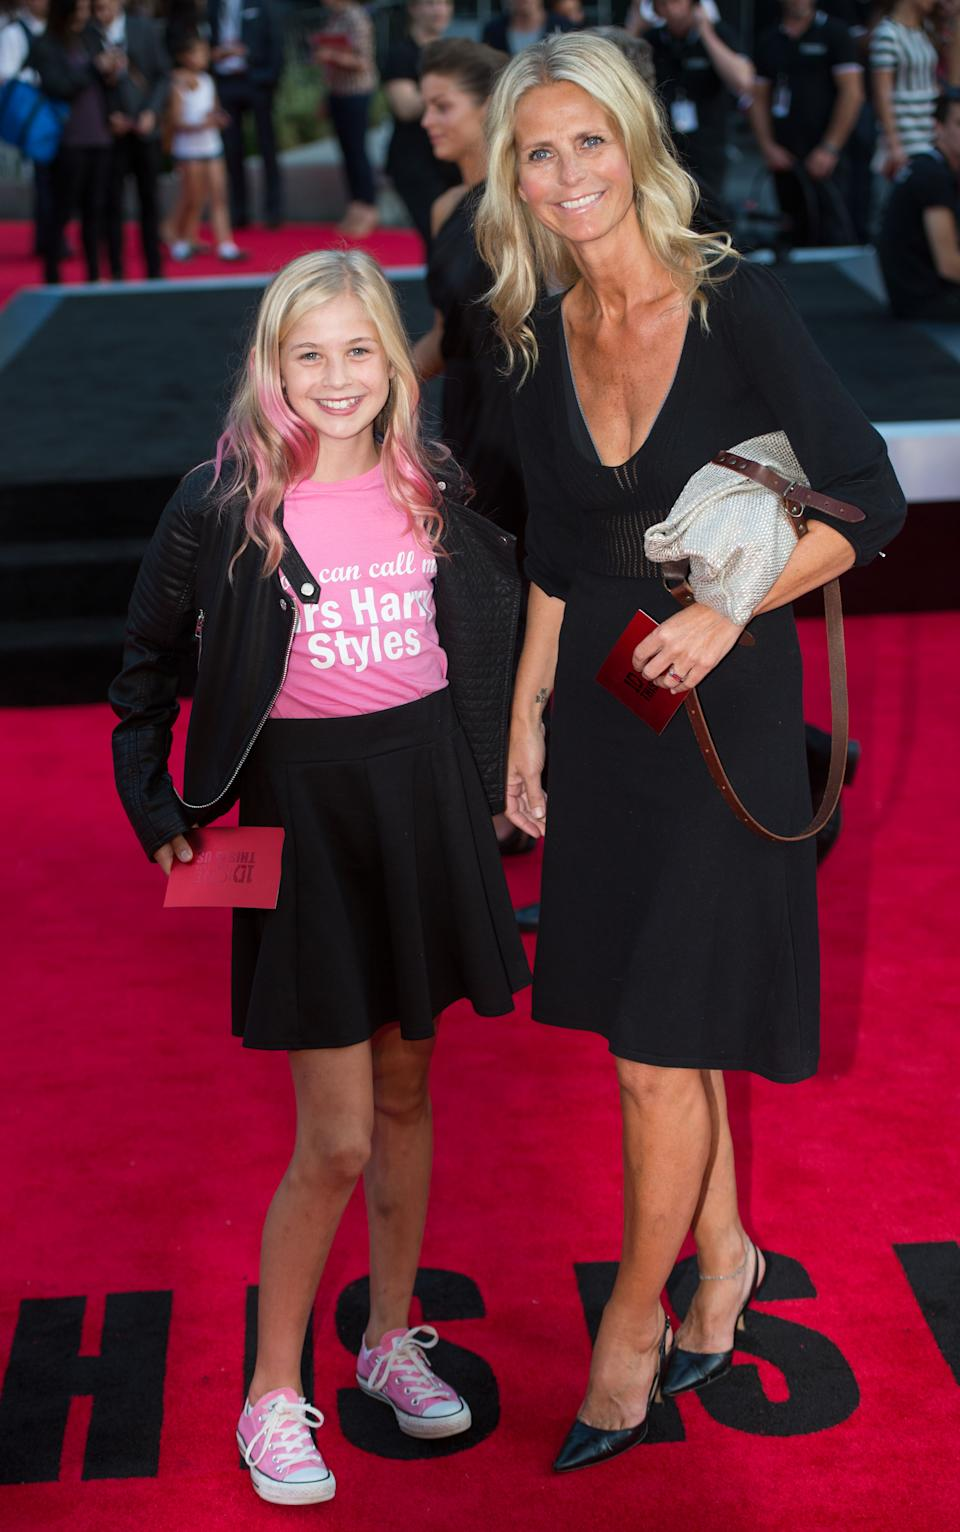 LONDON, UNITED KINGDOM - AUGUST 20:    Ulrika Jonsson and daughter Bo Eva Coeur Jonsson attend the World Premiere of 'One Direction: This Is Us' at Empire Leicester Square on August 20, 2013 in London, England. (Photo by Samir Hussein/WireImage)